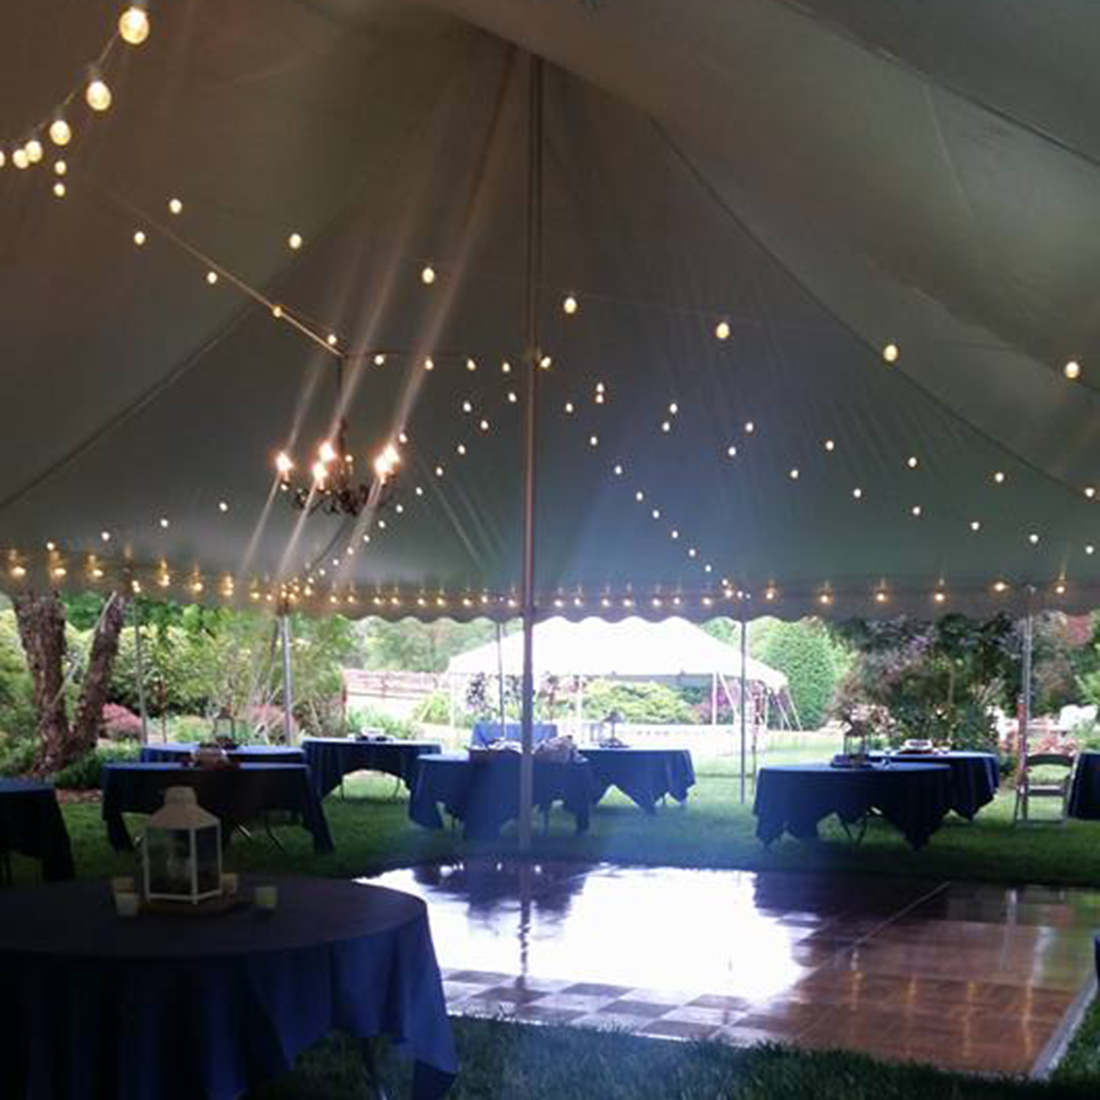 previousPlaynext & Cafe Lights - 50ft - DeeJayu0027s Event Rentals